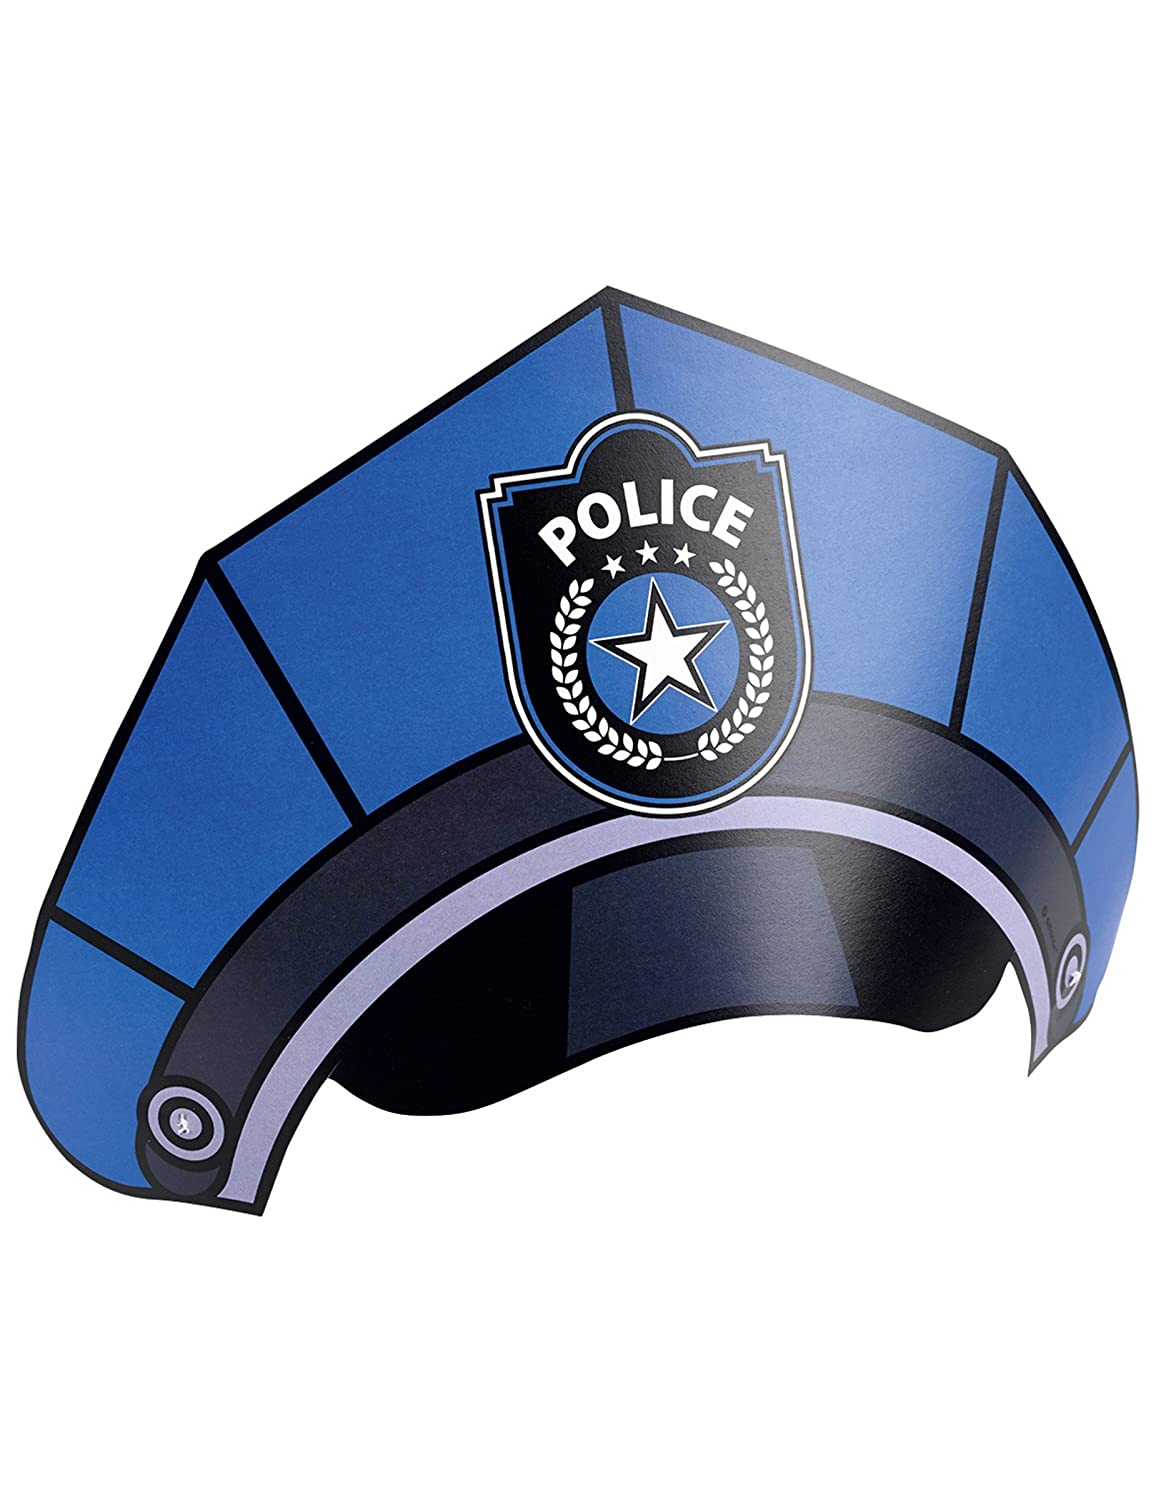 Amscan 998290 8 Cone Hats Police